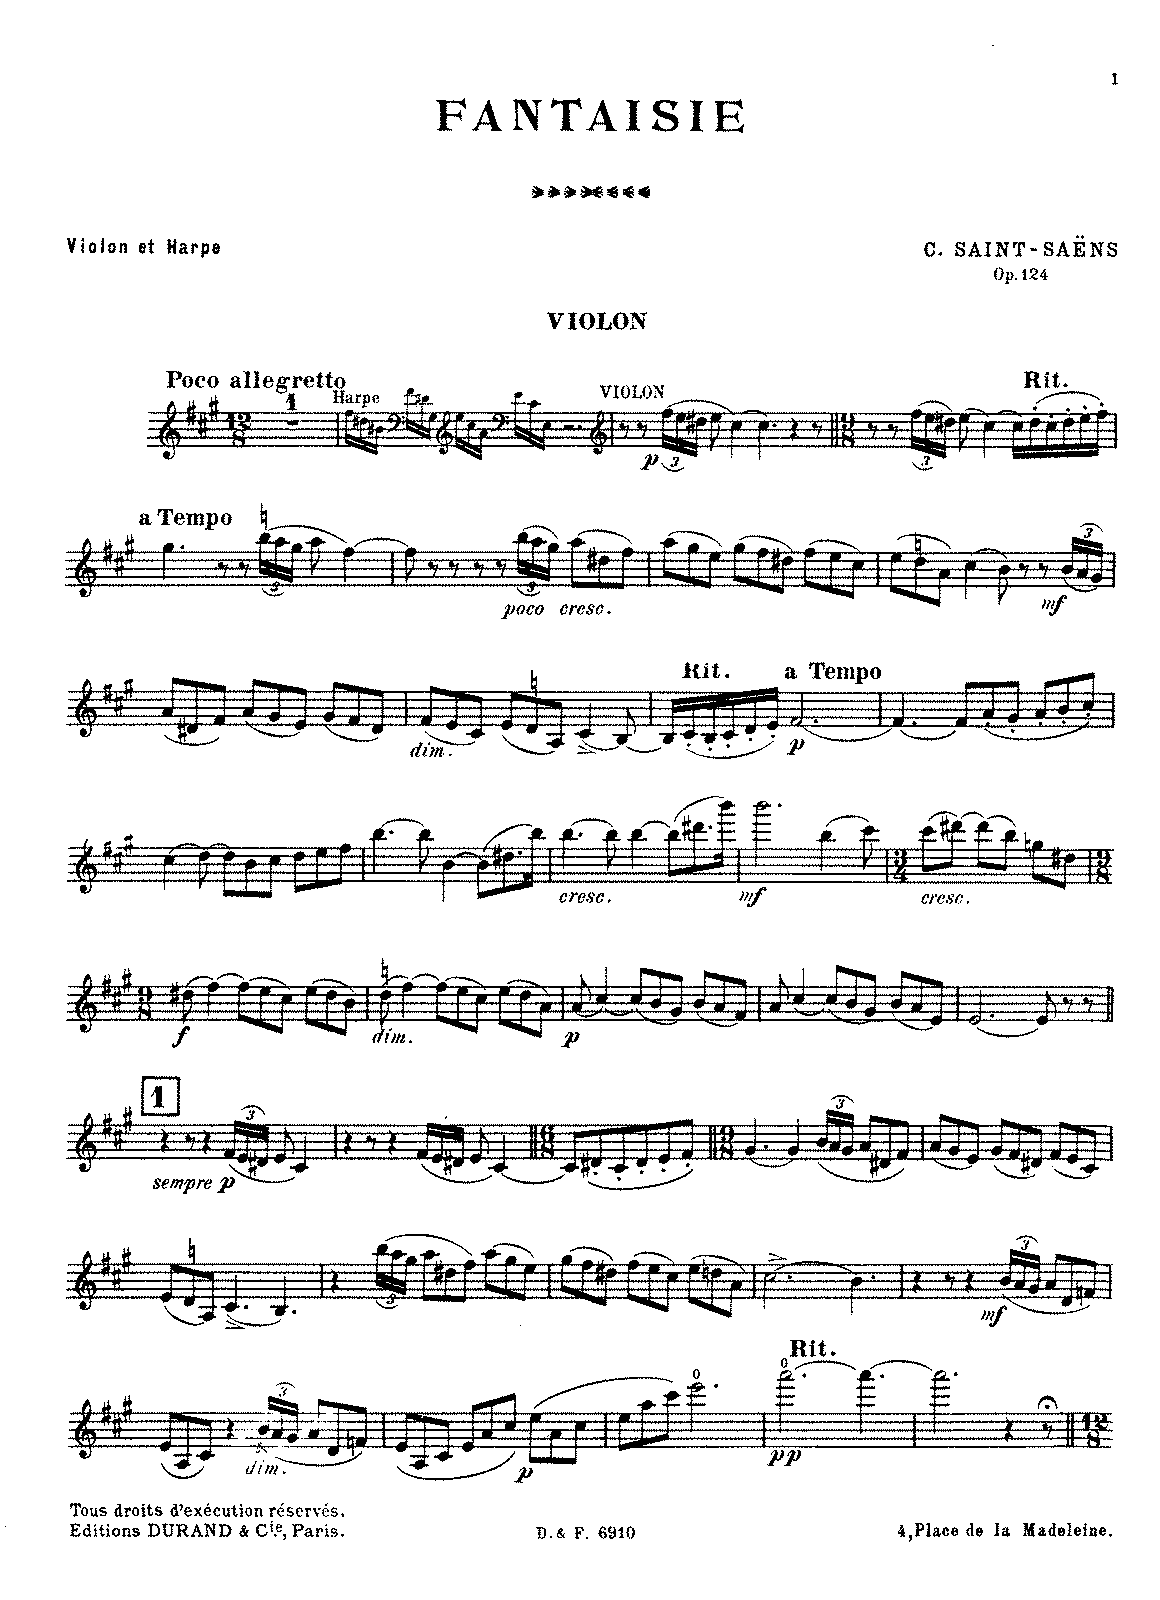 PMLP69010-Saint-Saëns - Fantaisie, Op. 124 (violin and harp).pdf